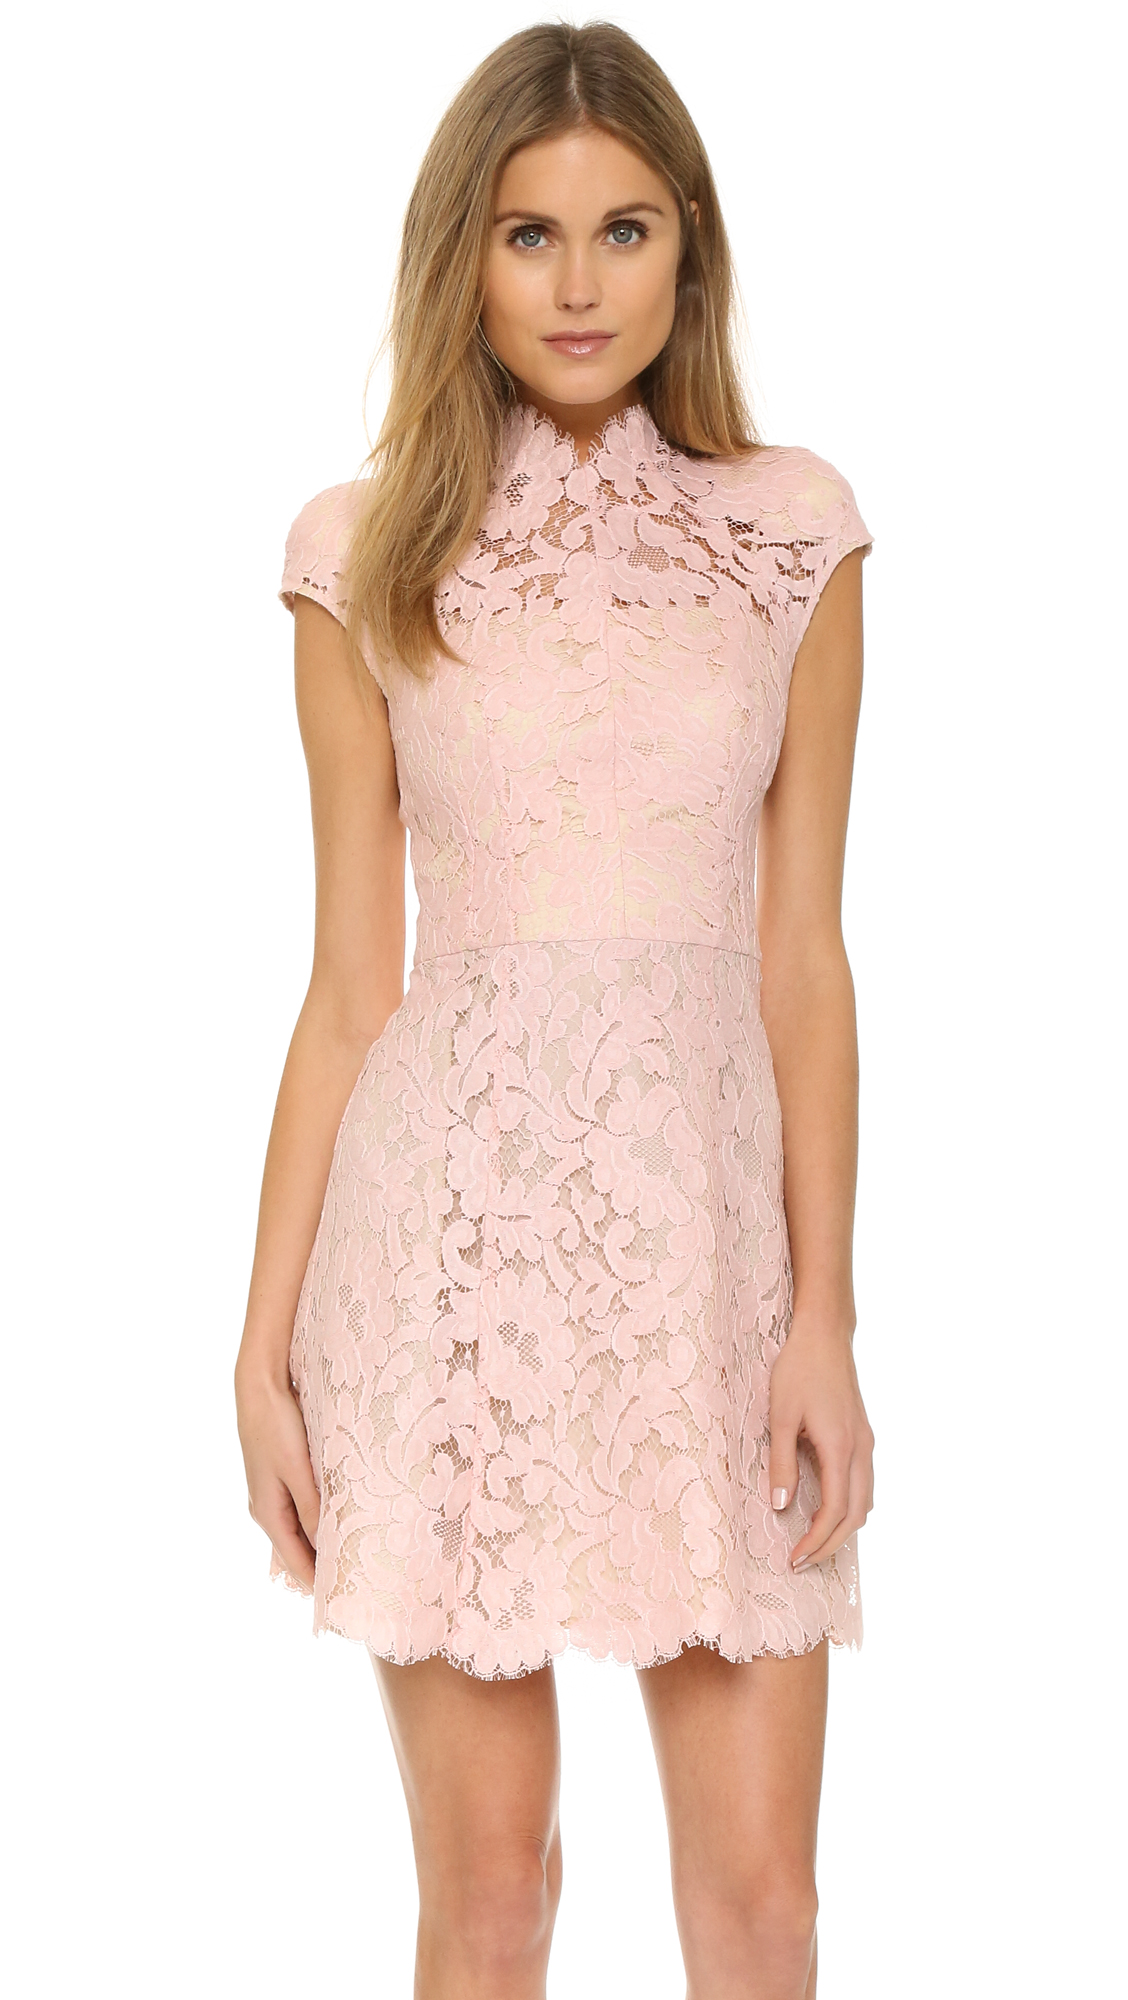 Lover Warrior Lace Mini Dress - Dusty Pink